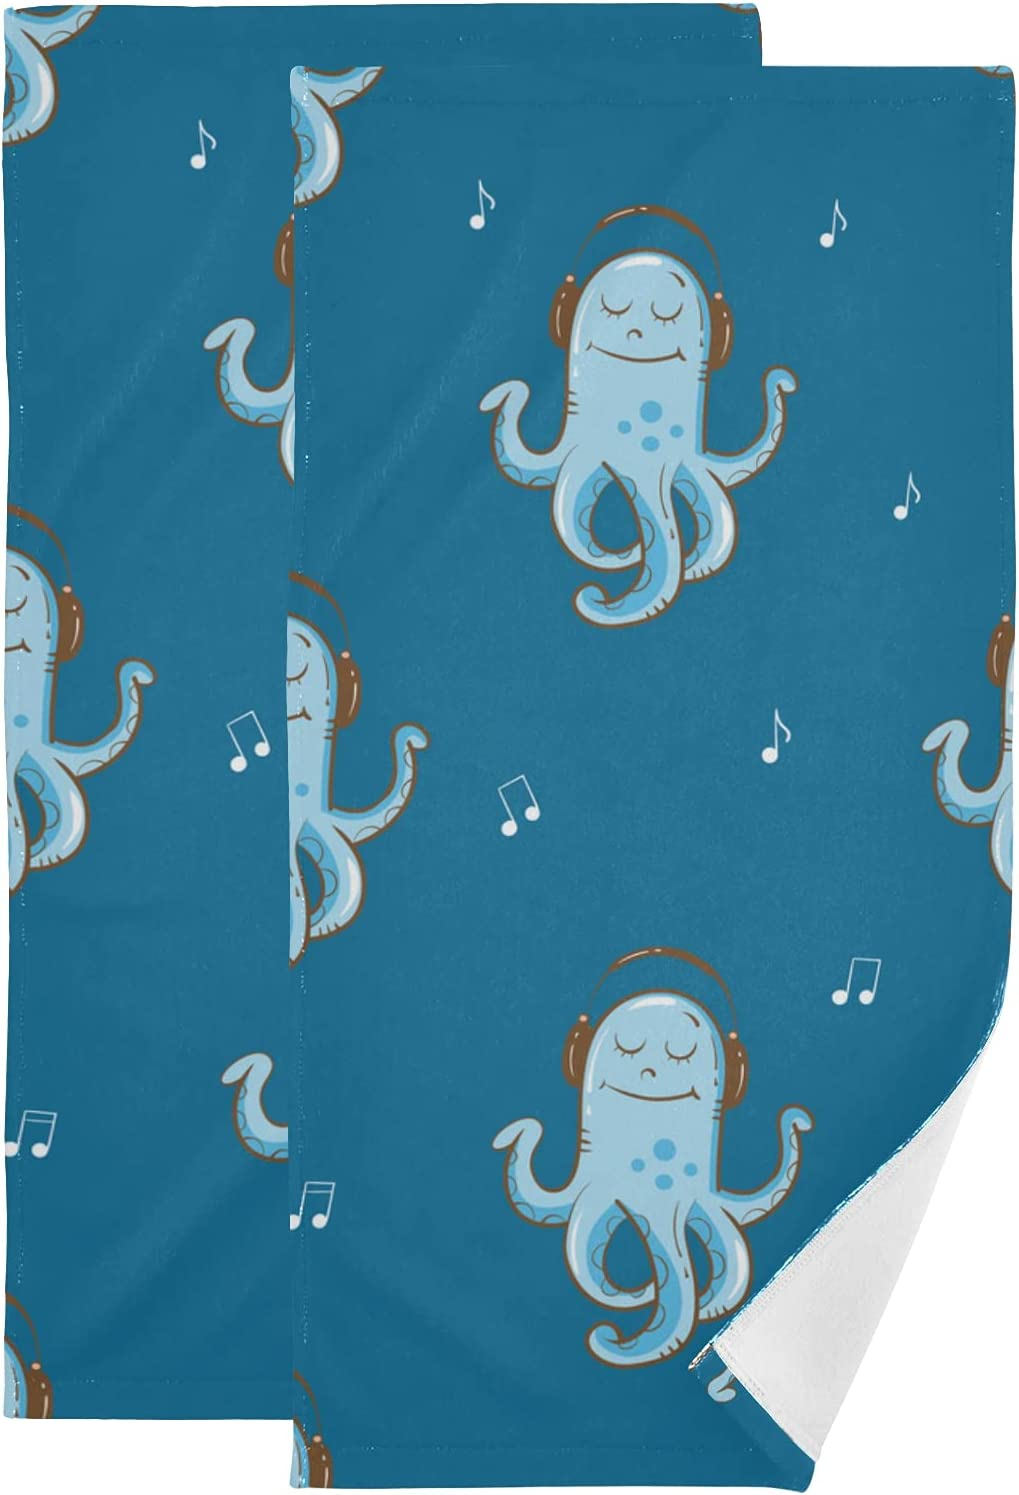 online shop Set of 2 Towels 2021 autumn and winter new for Bathroom Animal T Happy Fun Musical